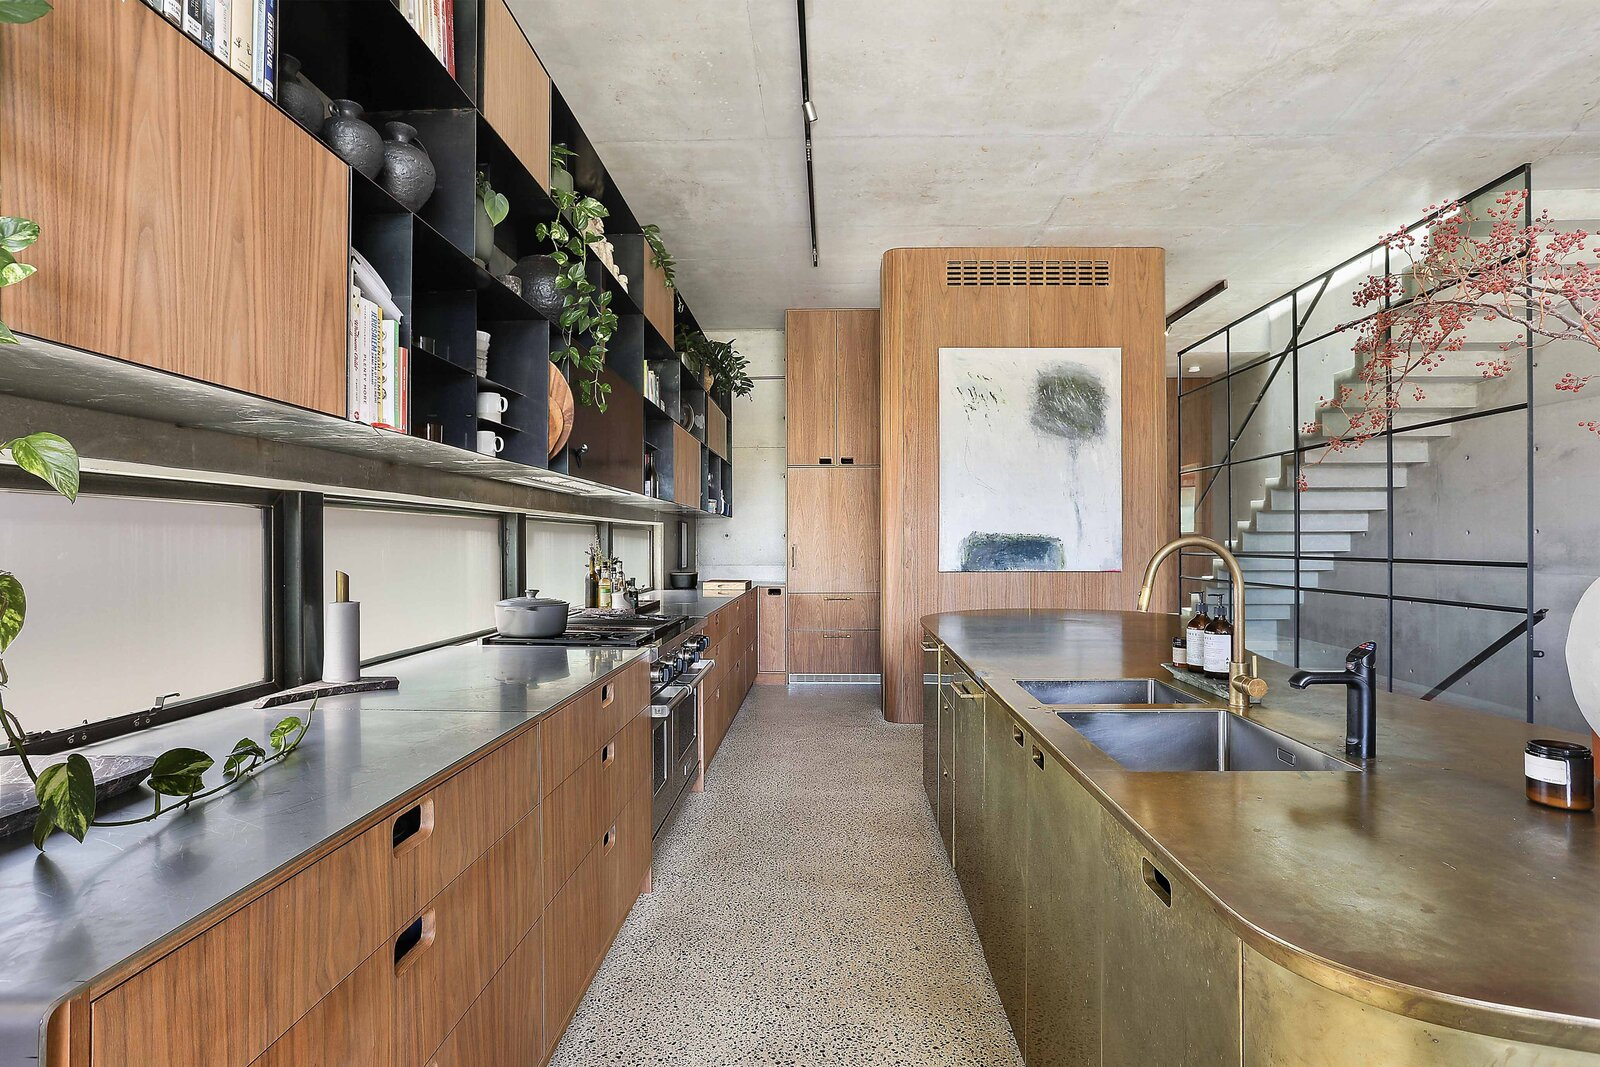 Sydney concrete home kitchen